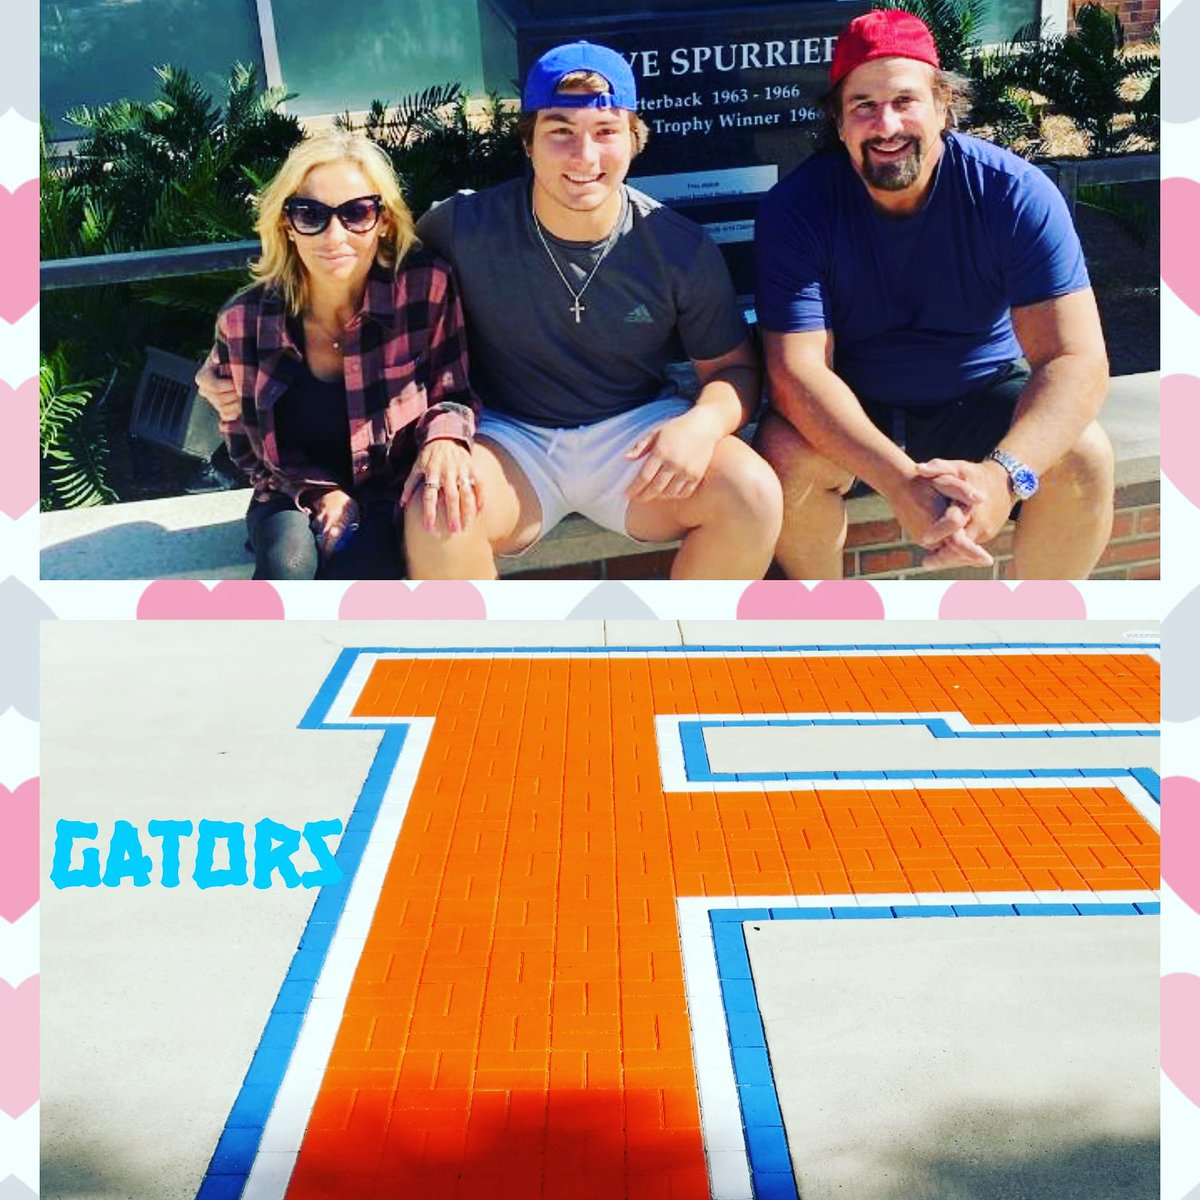 Replying to @suziselvis: U of F today #Gators#gainsville